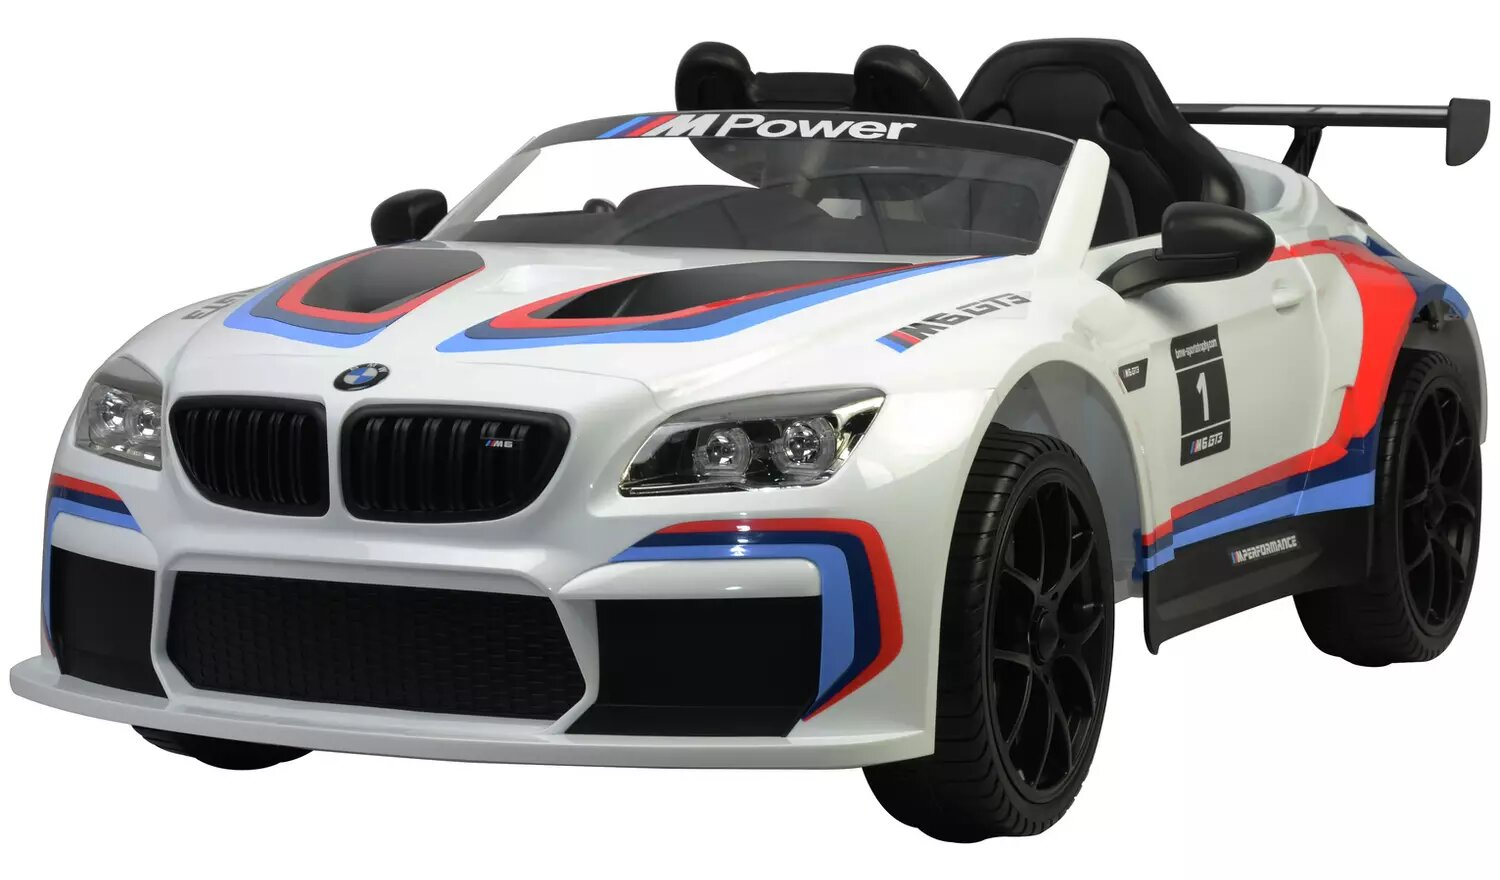 BMW GT3 Replica 12V Powered Ride On Car With Remote Control.